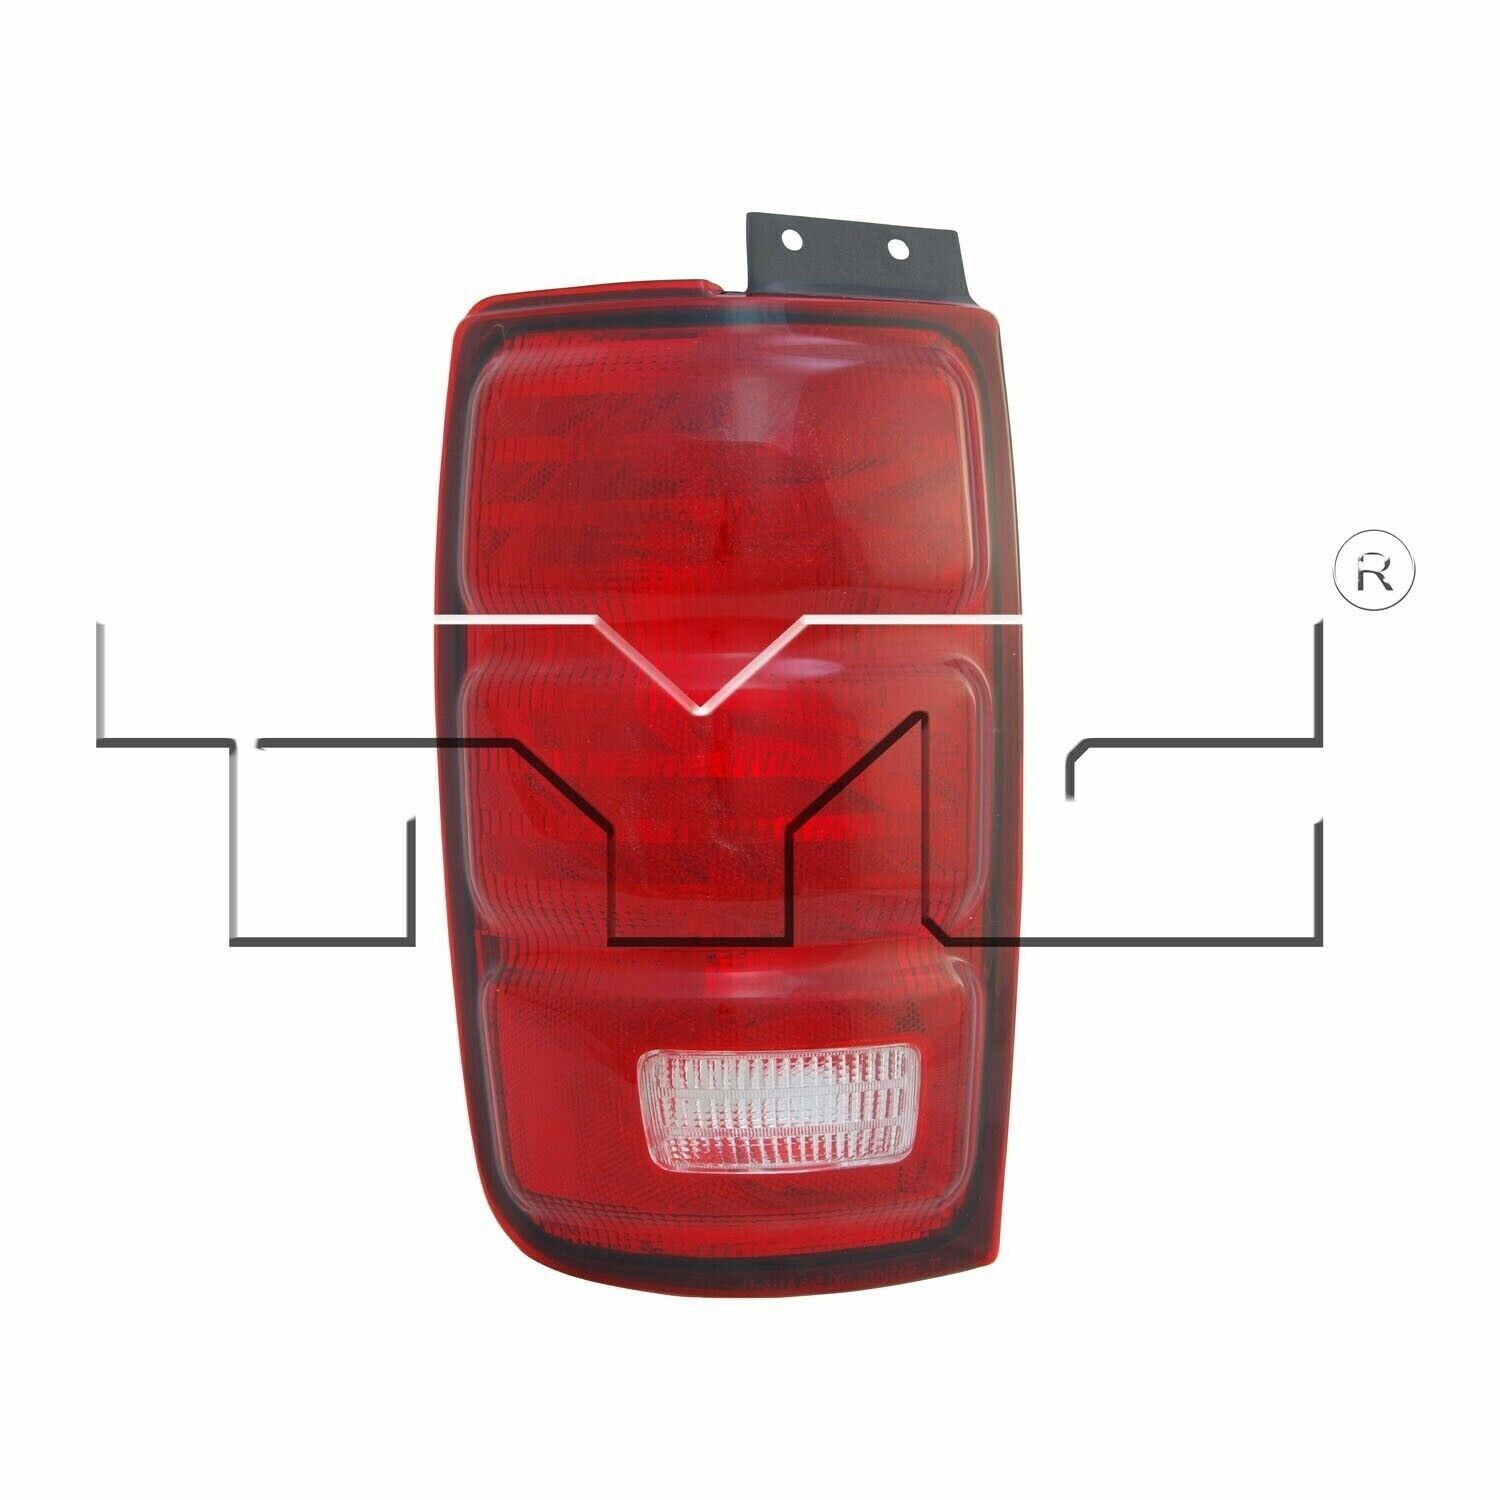 Tail Light Assembly-NSF Certified TYC 11-5146-01-1 fits 97-02 Ford Expedition